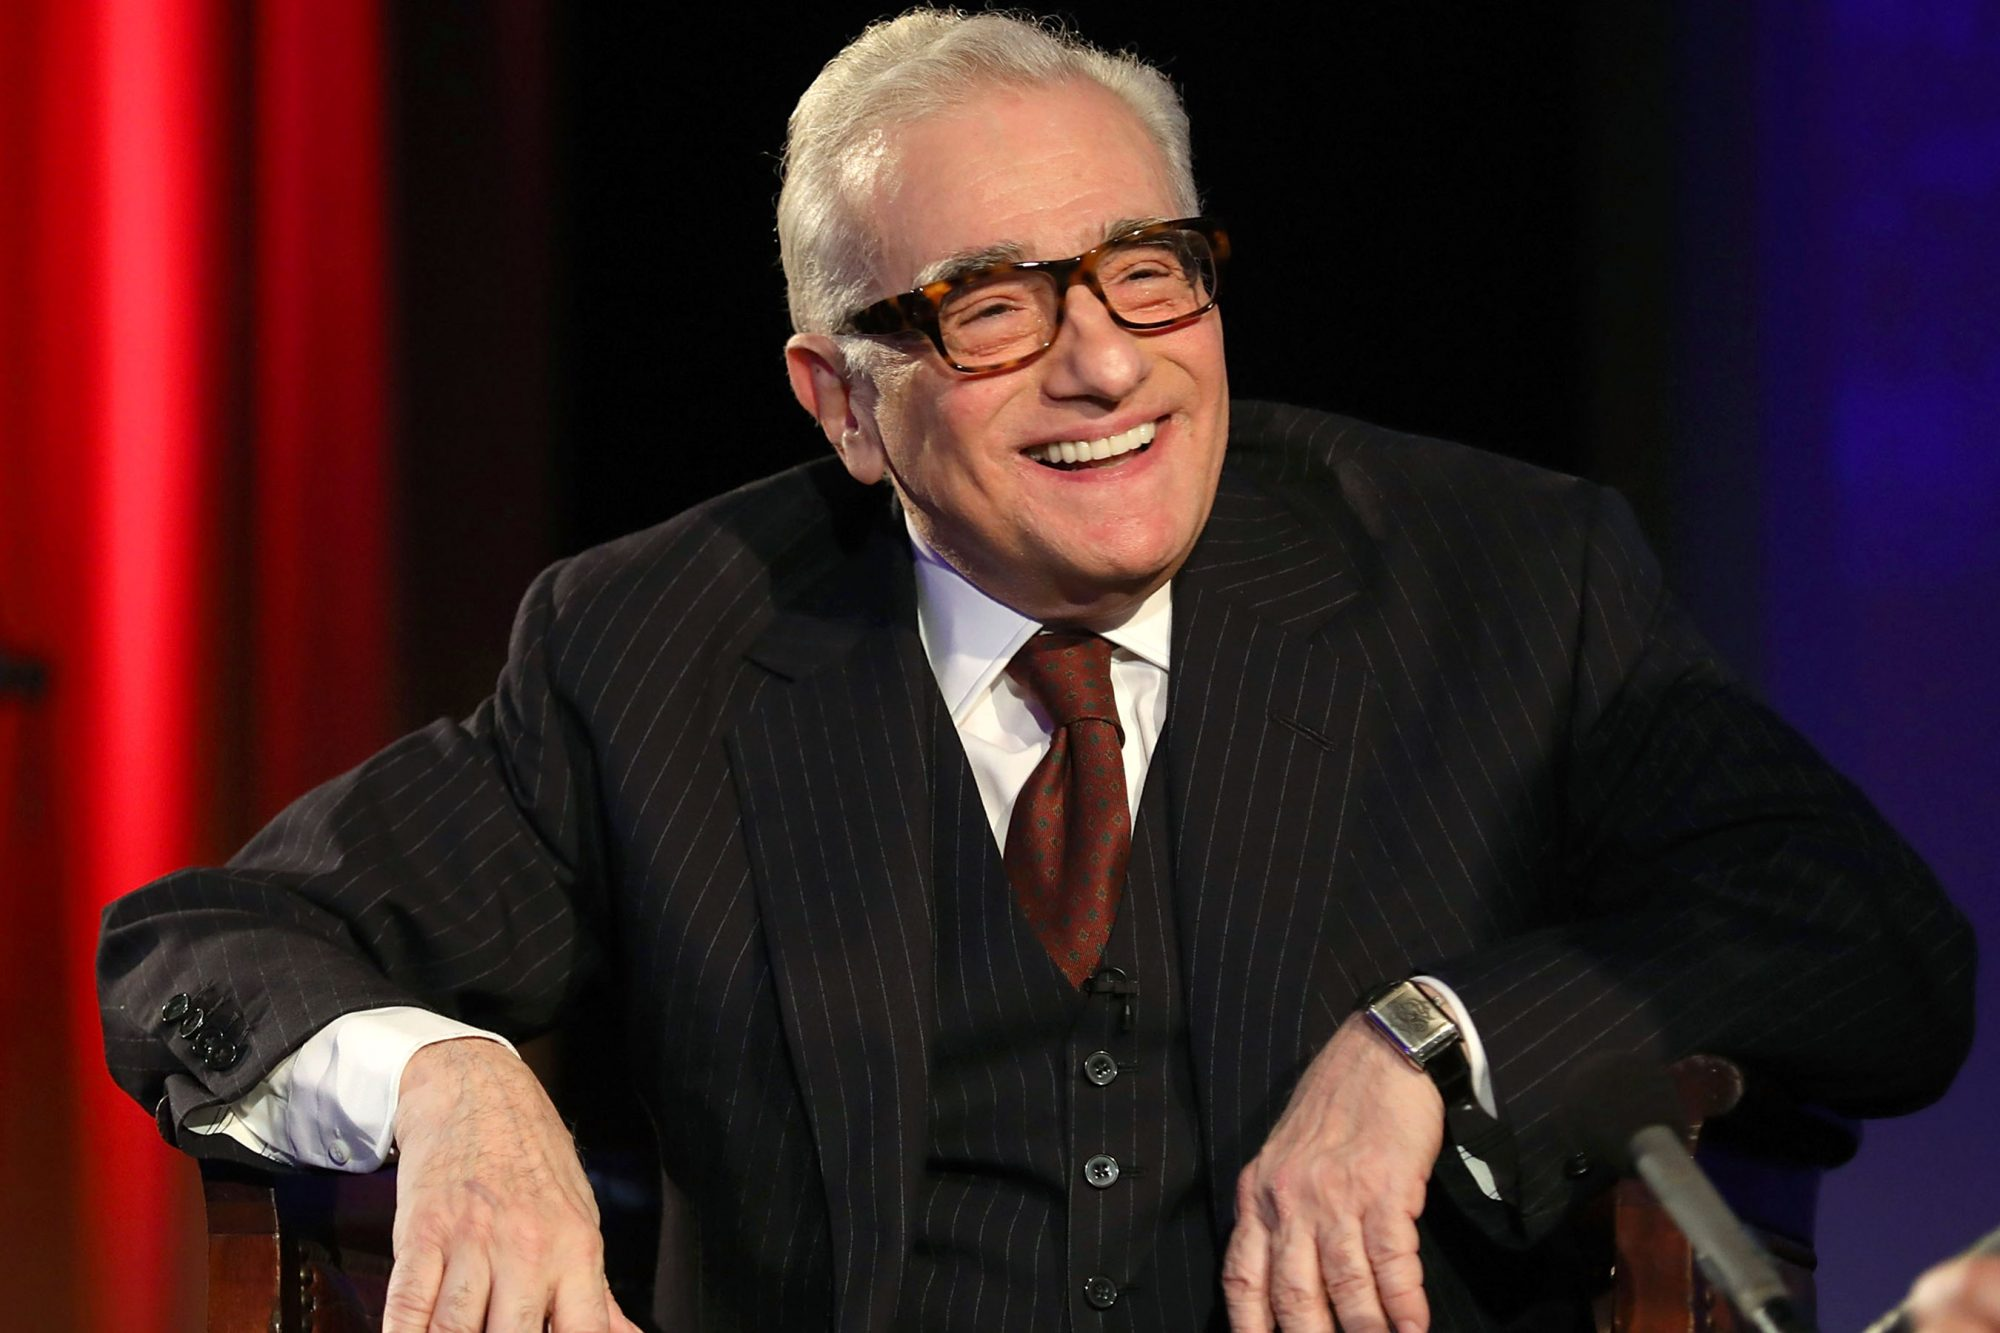 In conversation with Martin Scorsese At The BFI